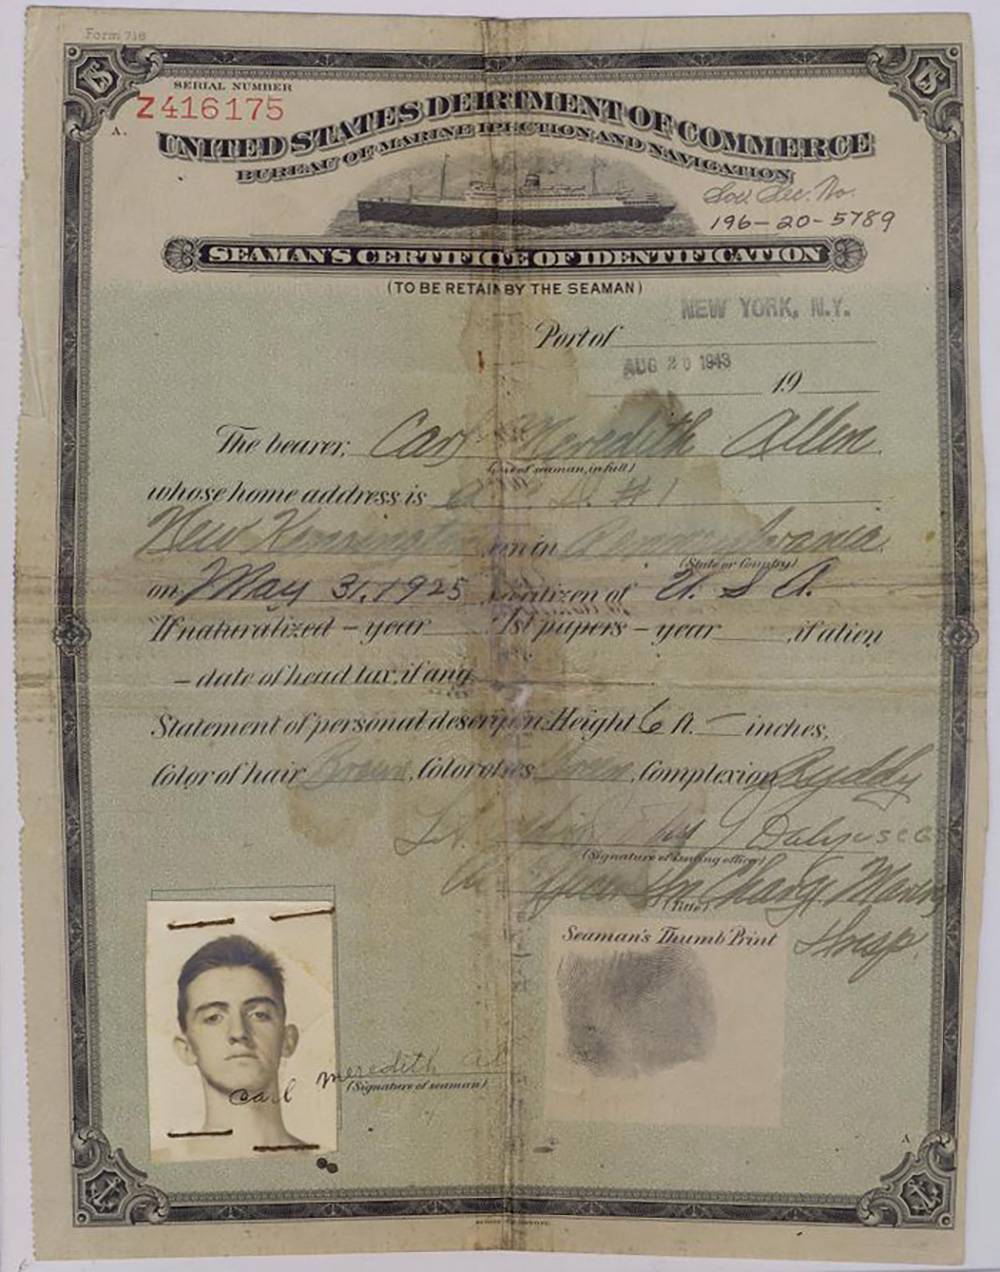 Carl Allen's Seaman's Certificate of Identification, August 20, 1943